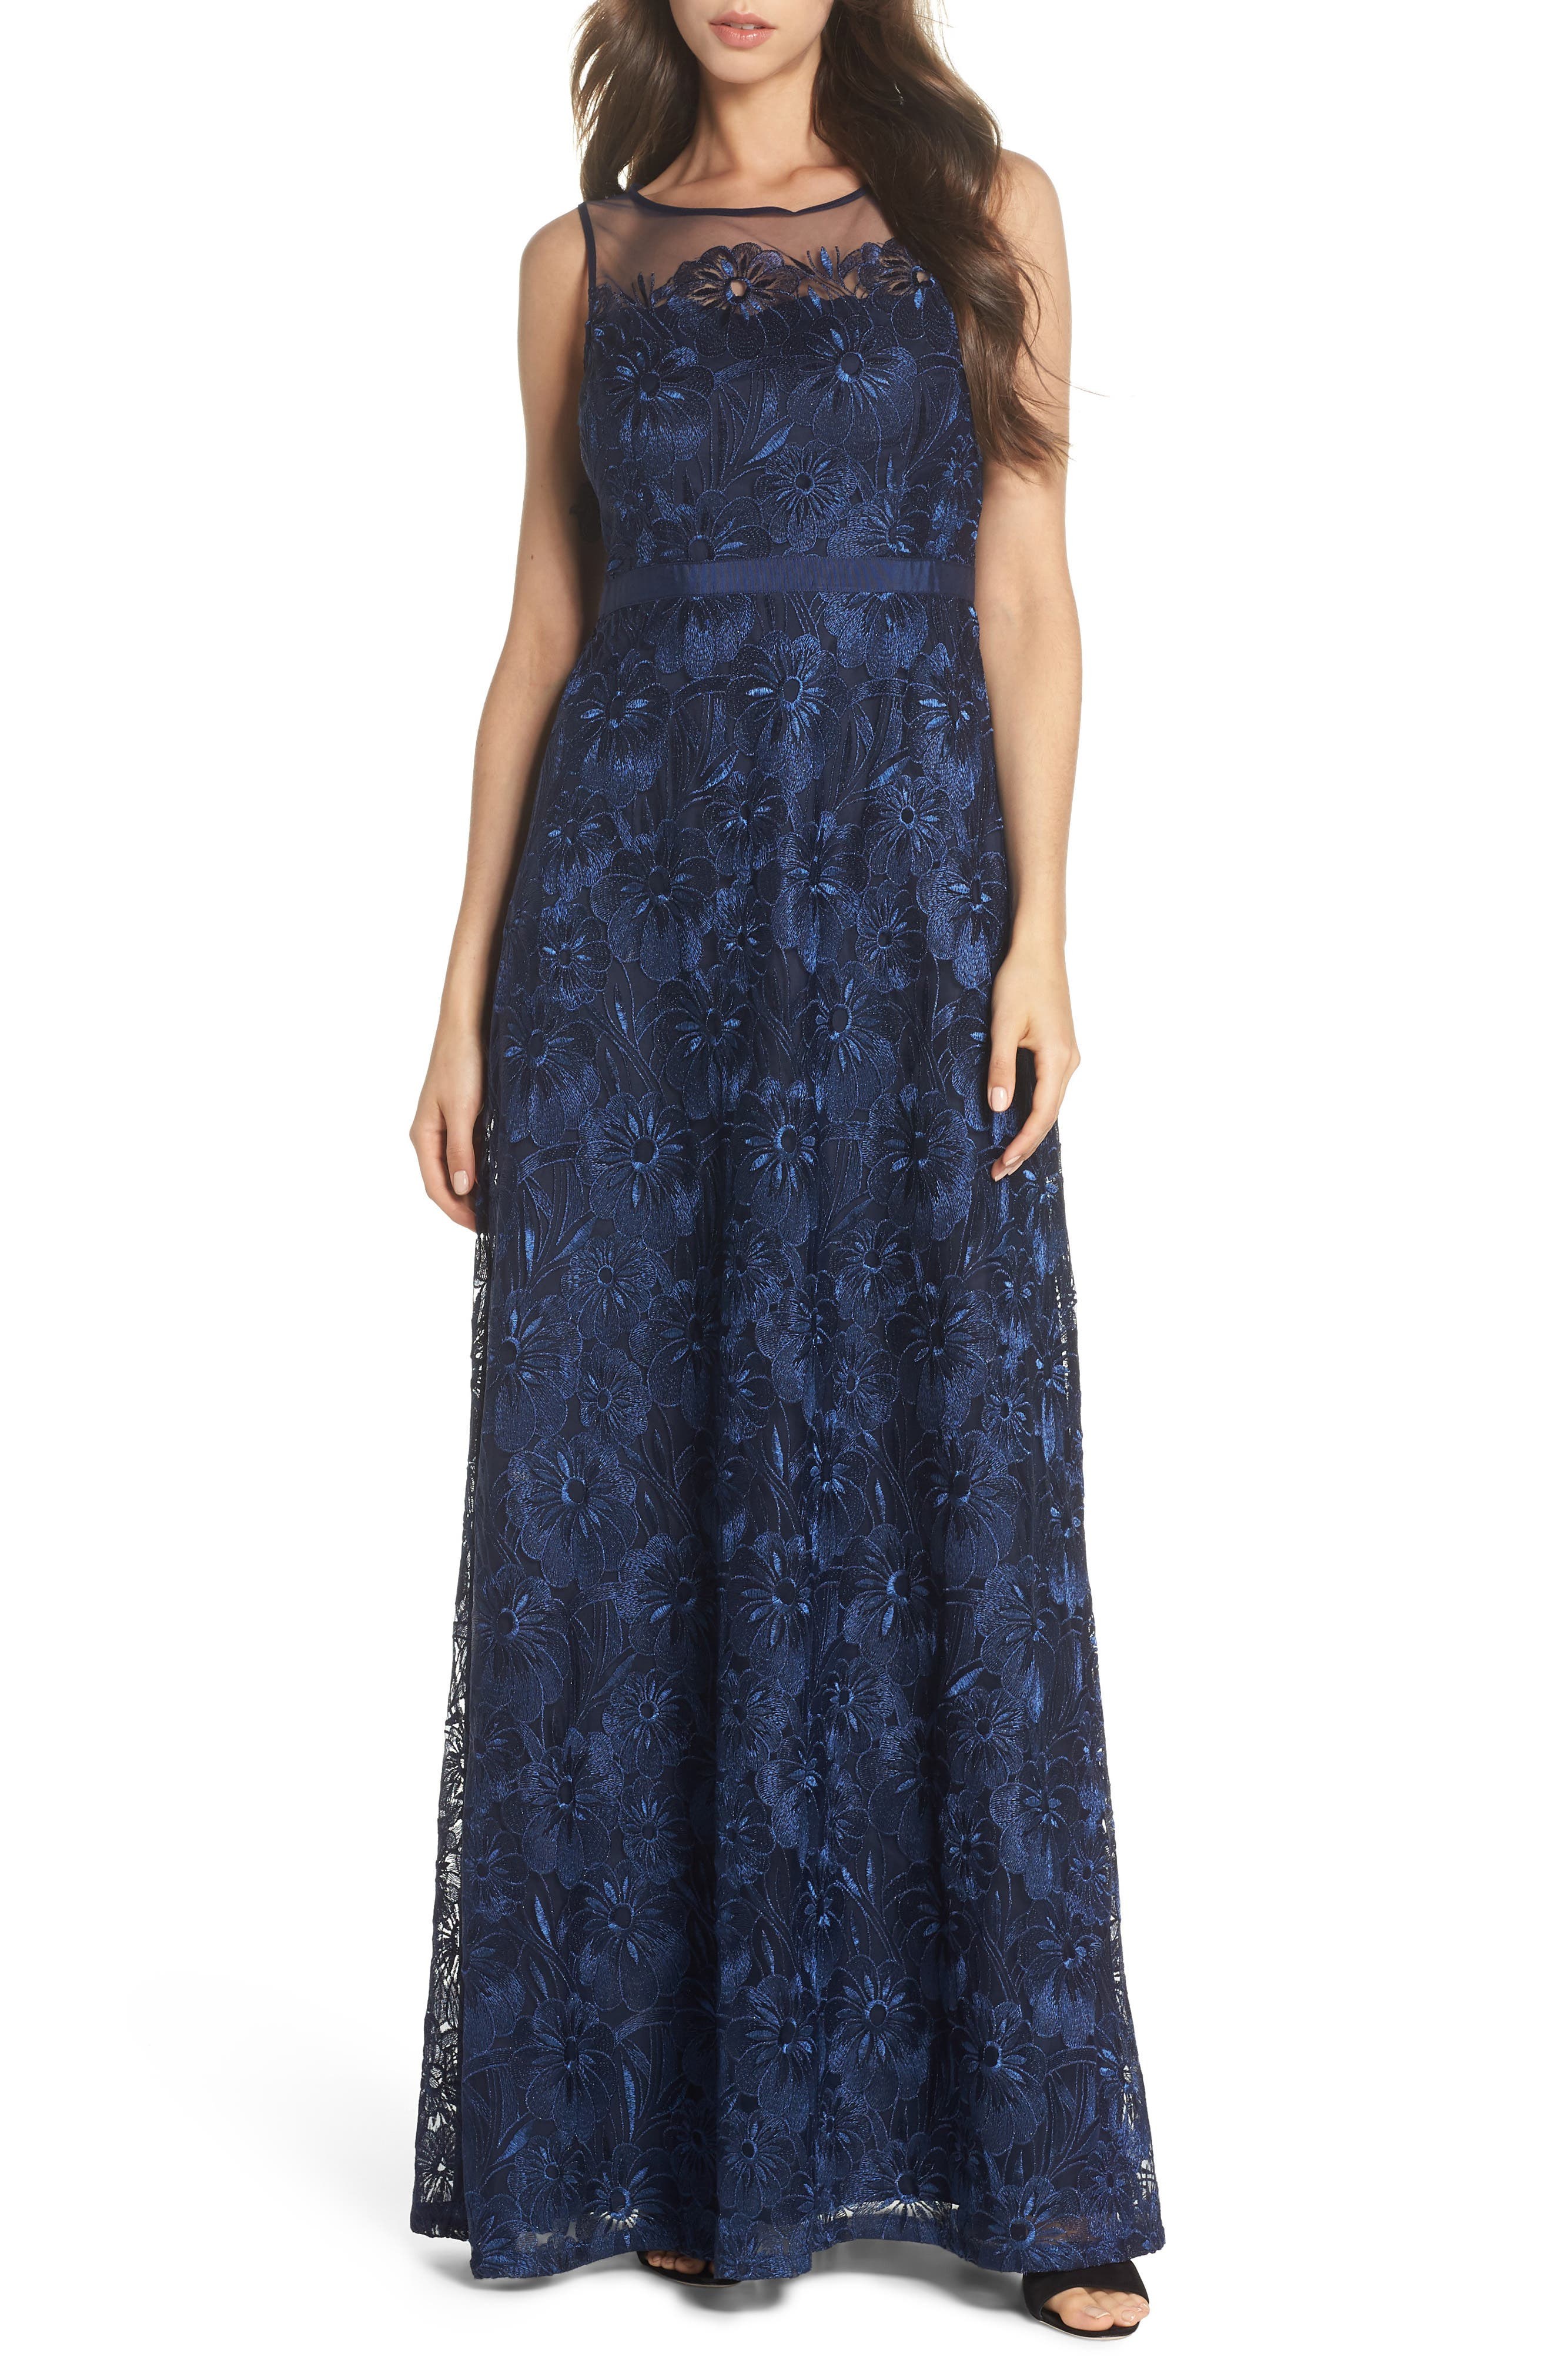 Adrianna Papell Flower Embroidered Gown